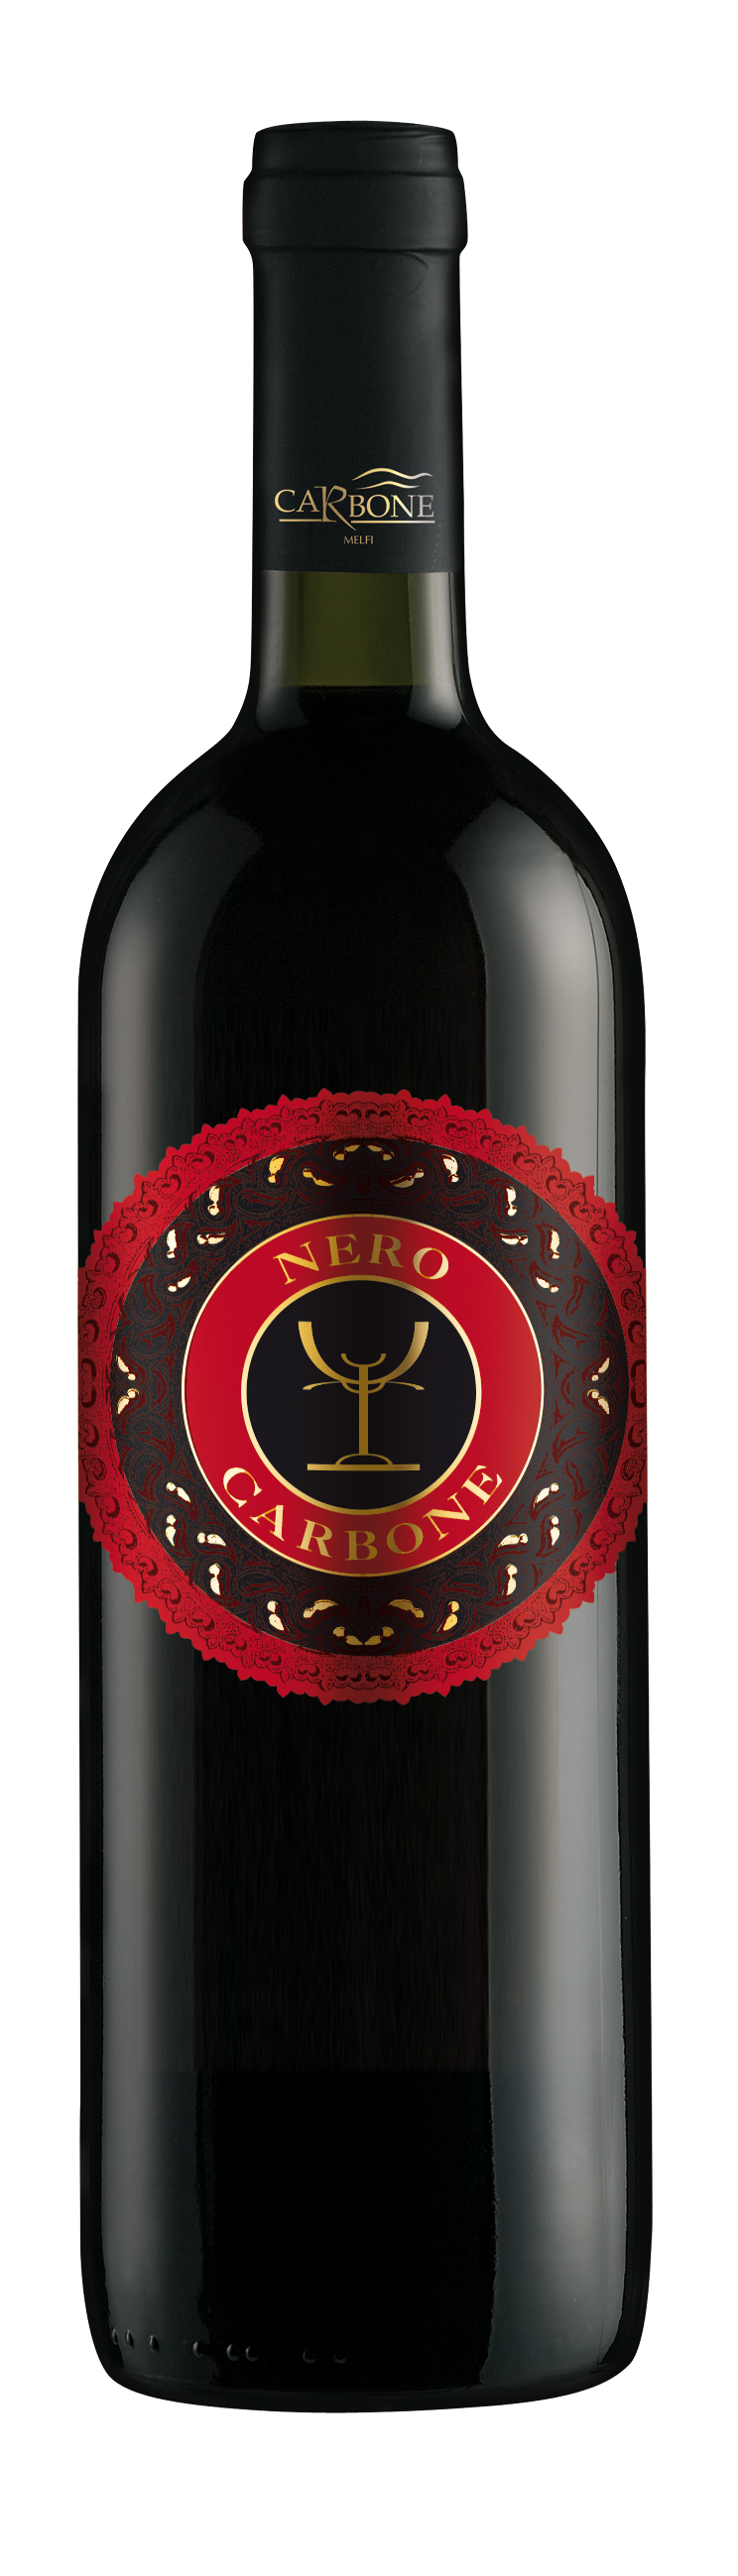 Nero Carbone Aglianico del Vulture 2011